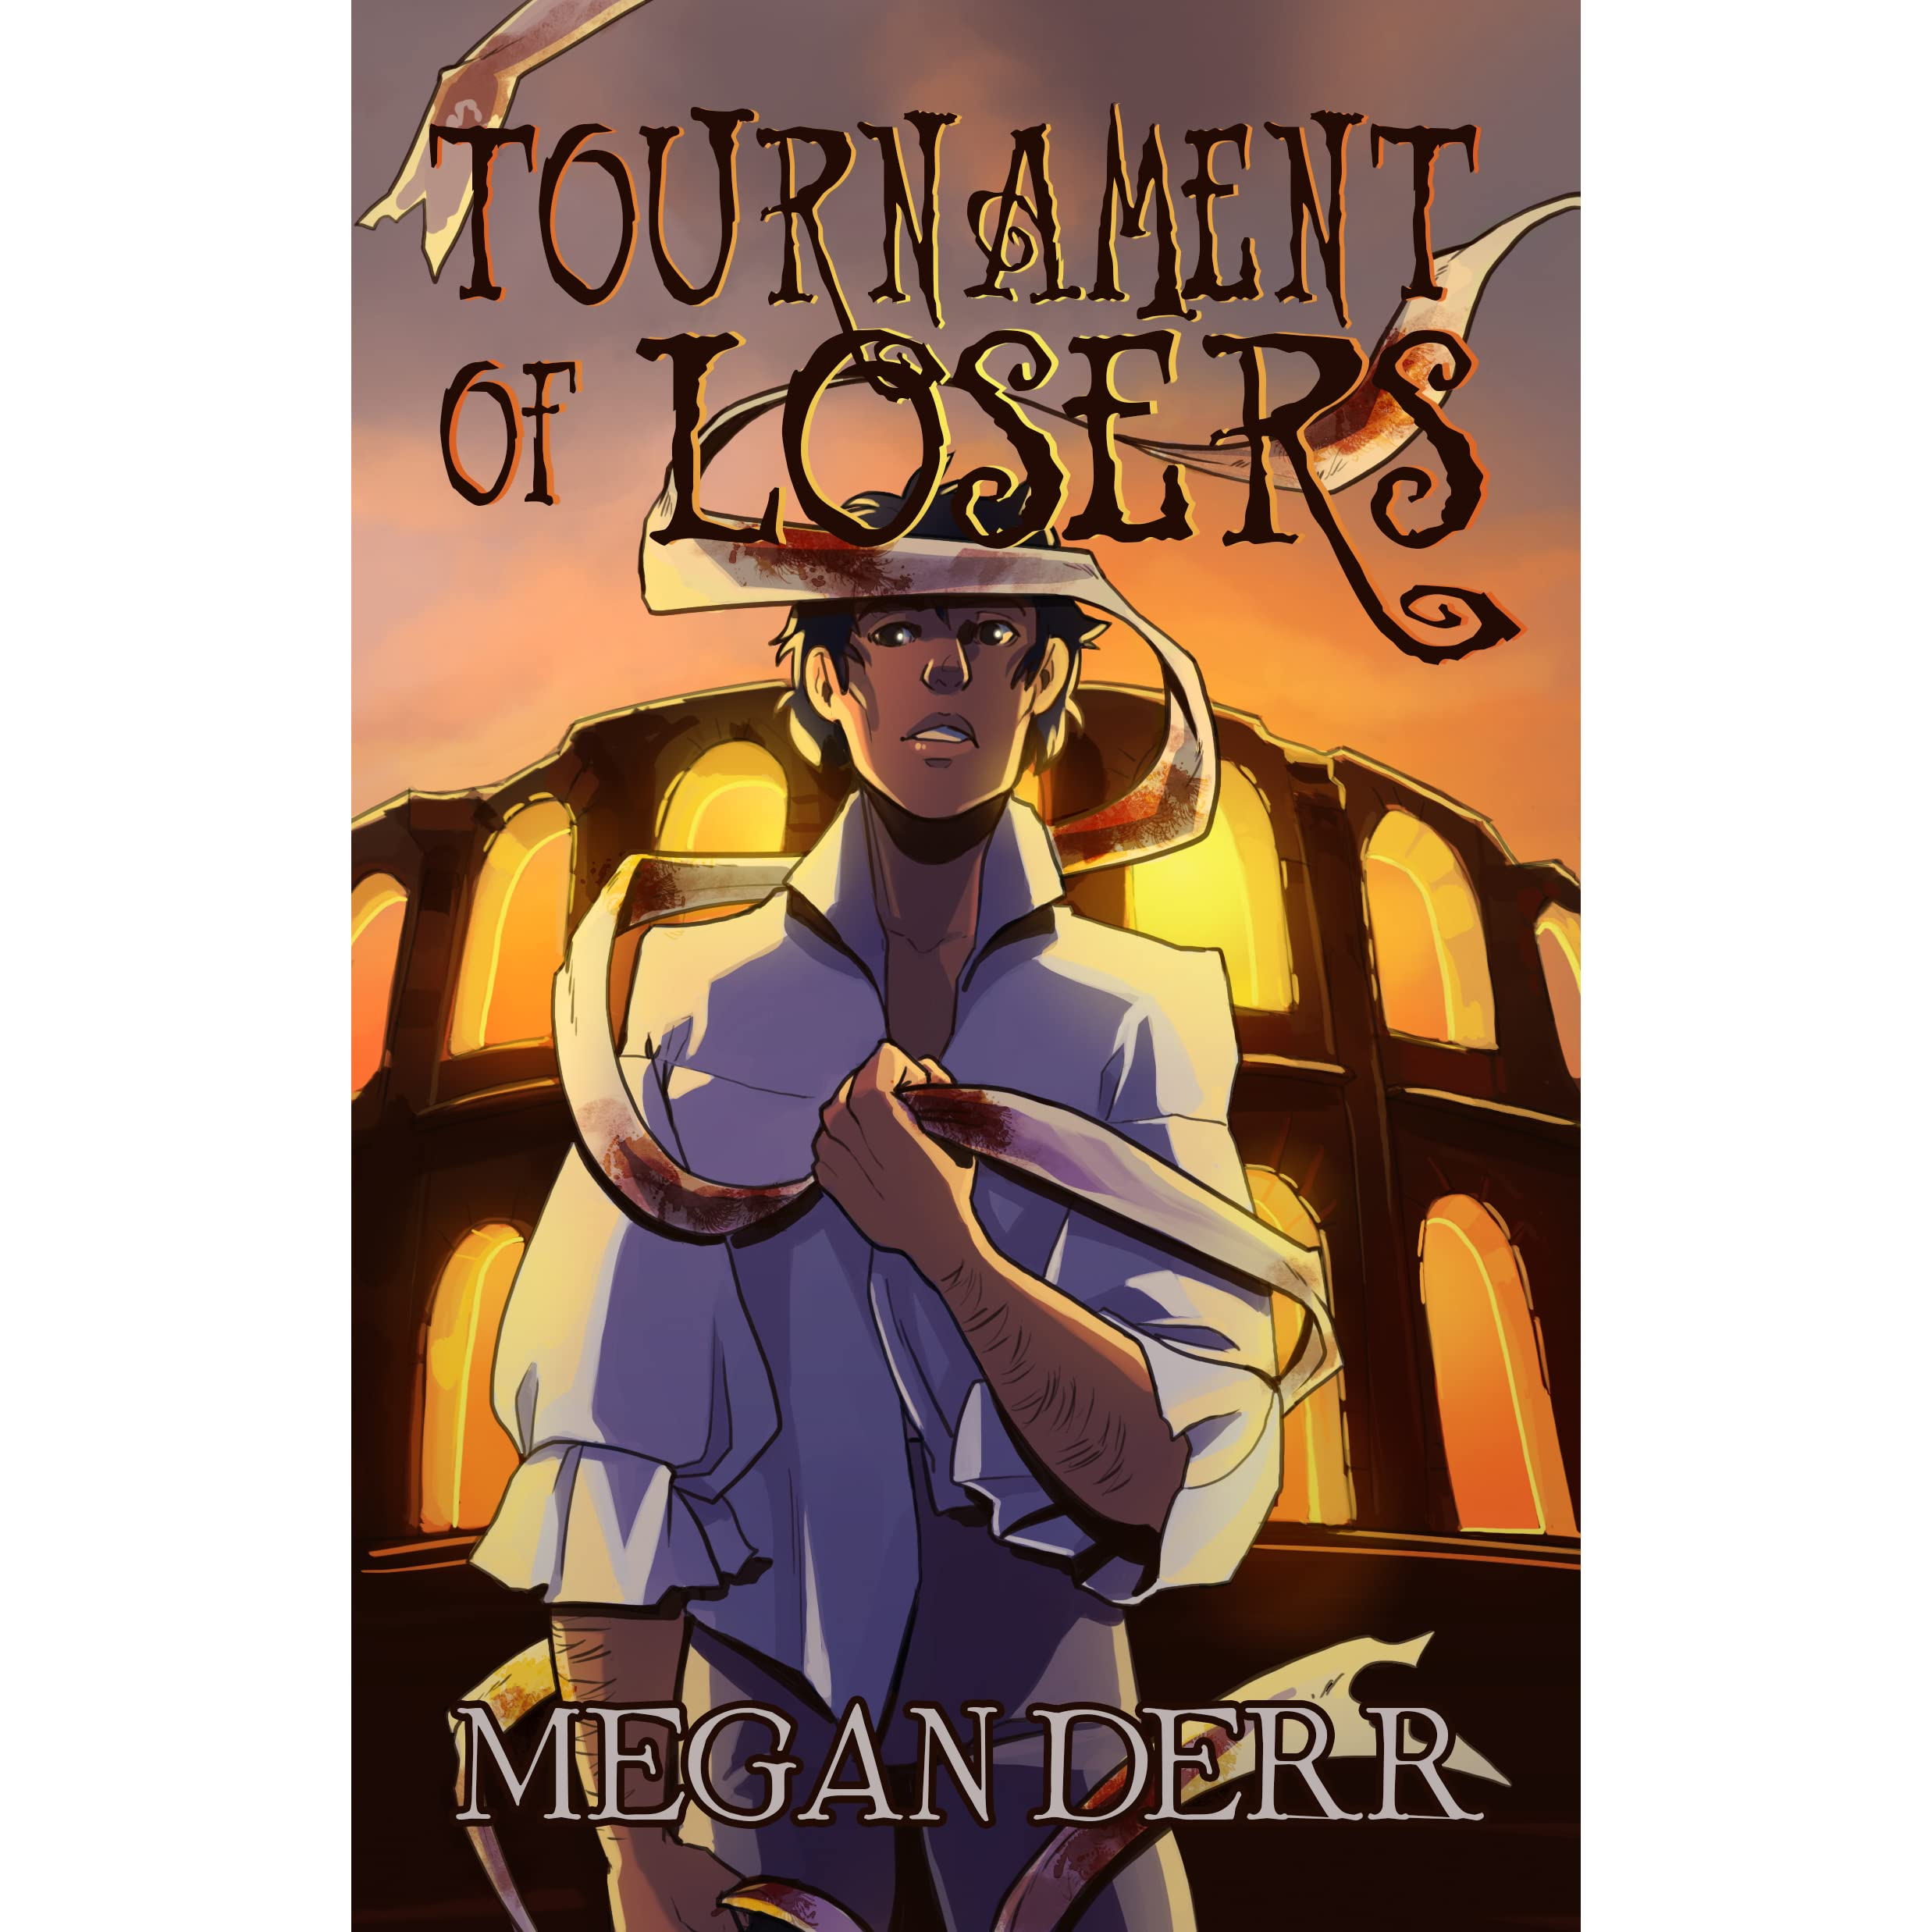 Tournament Of Losers By Megan Derr